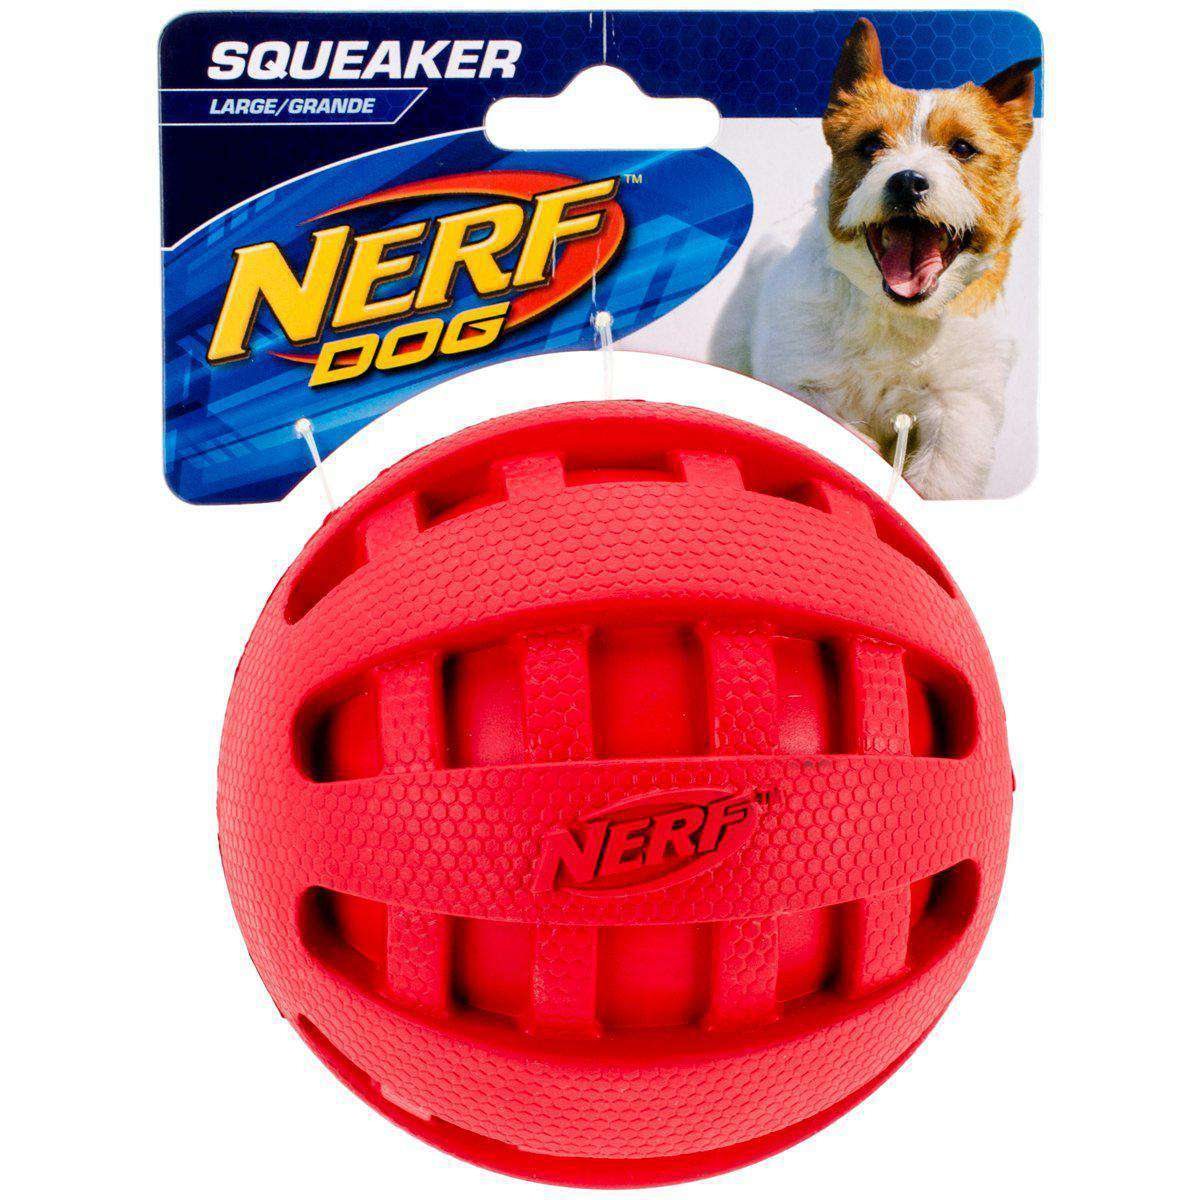 Nerf Checker Squeak Ball 4